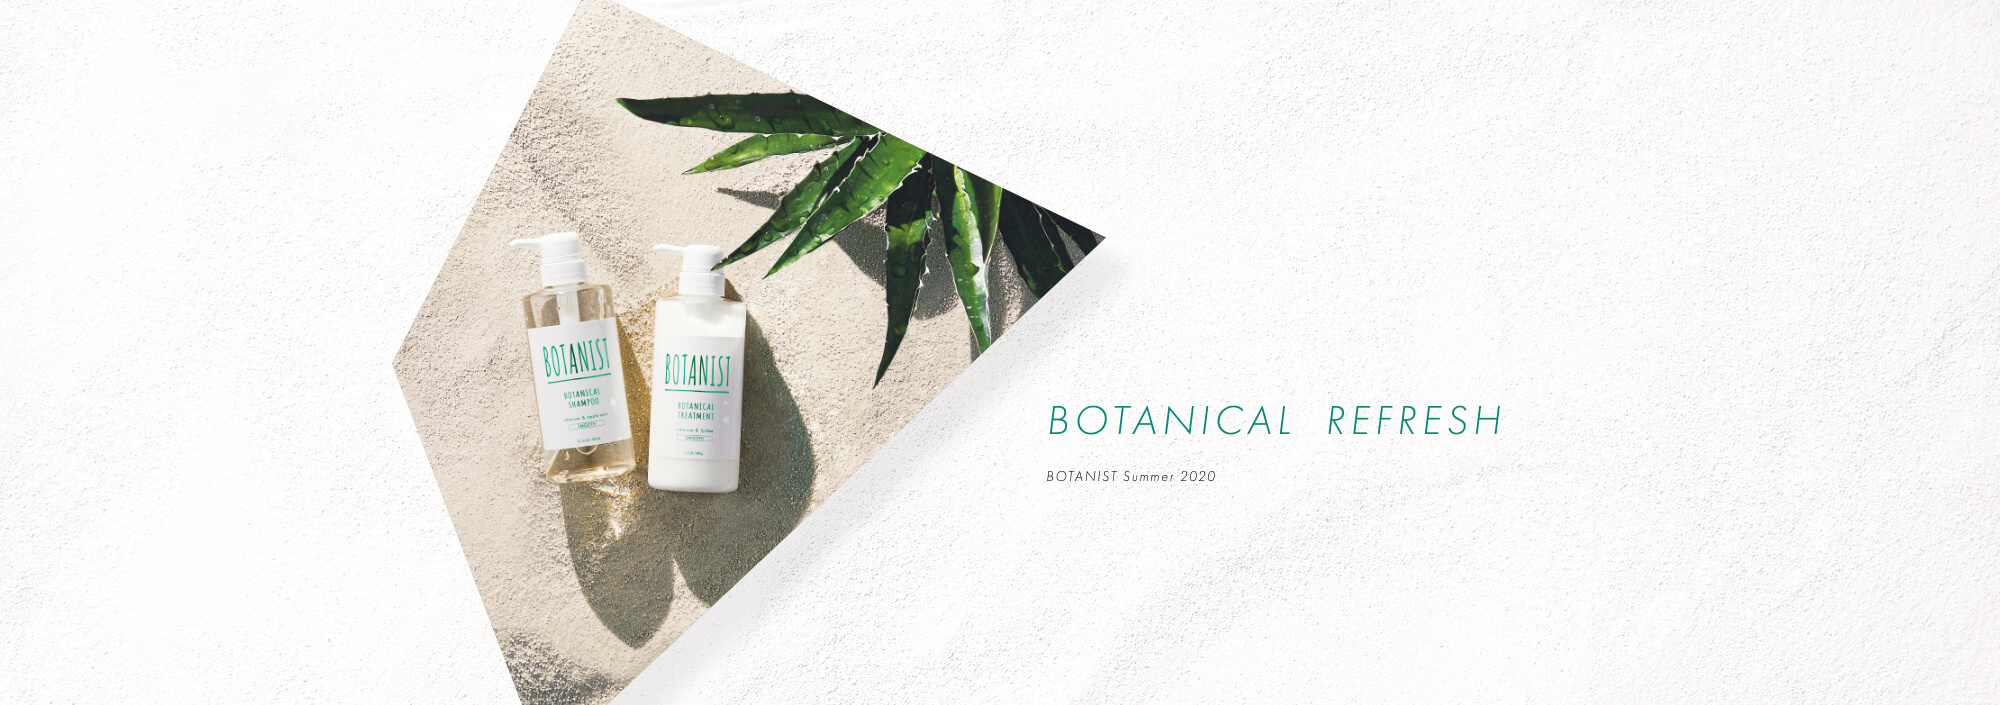 BOTANICAL REFRESH 2020